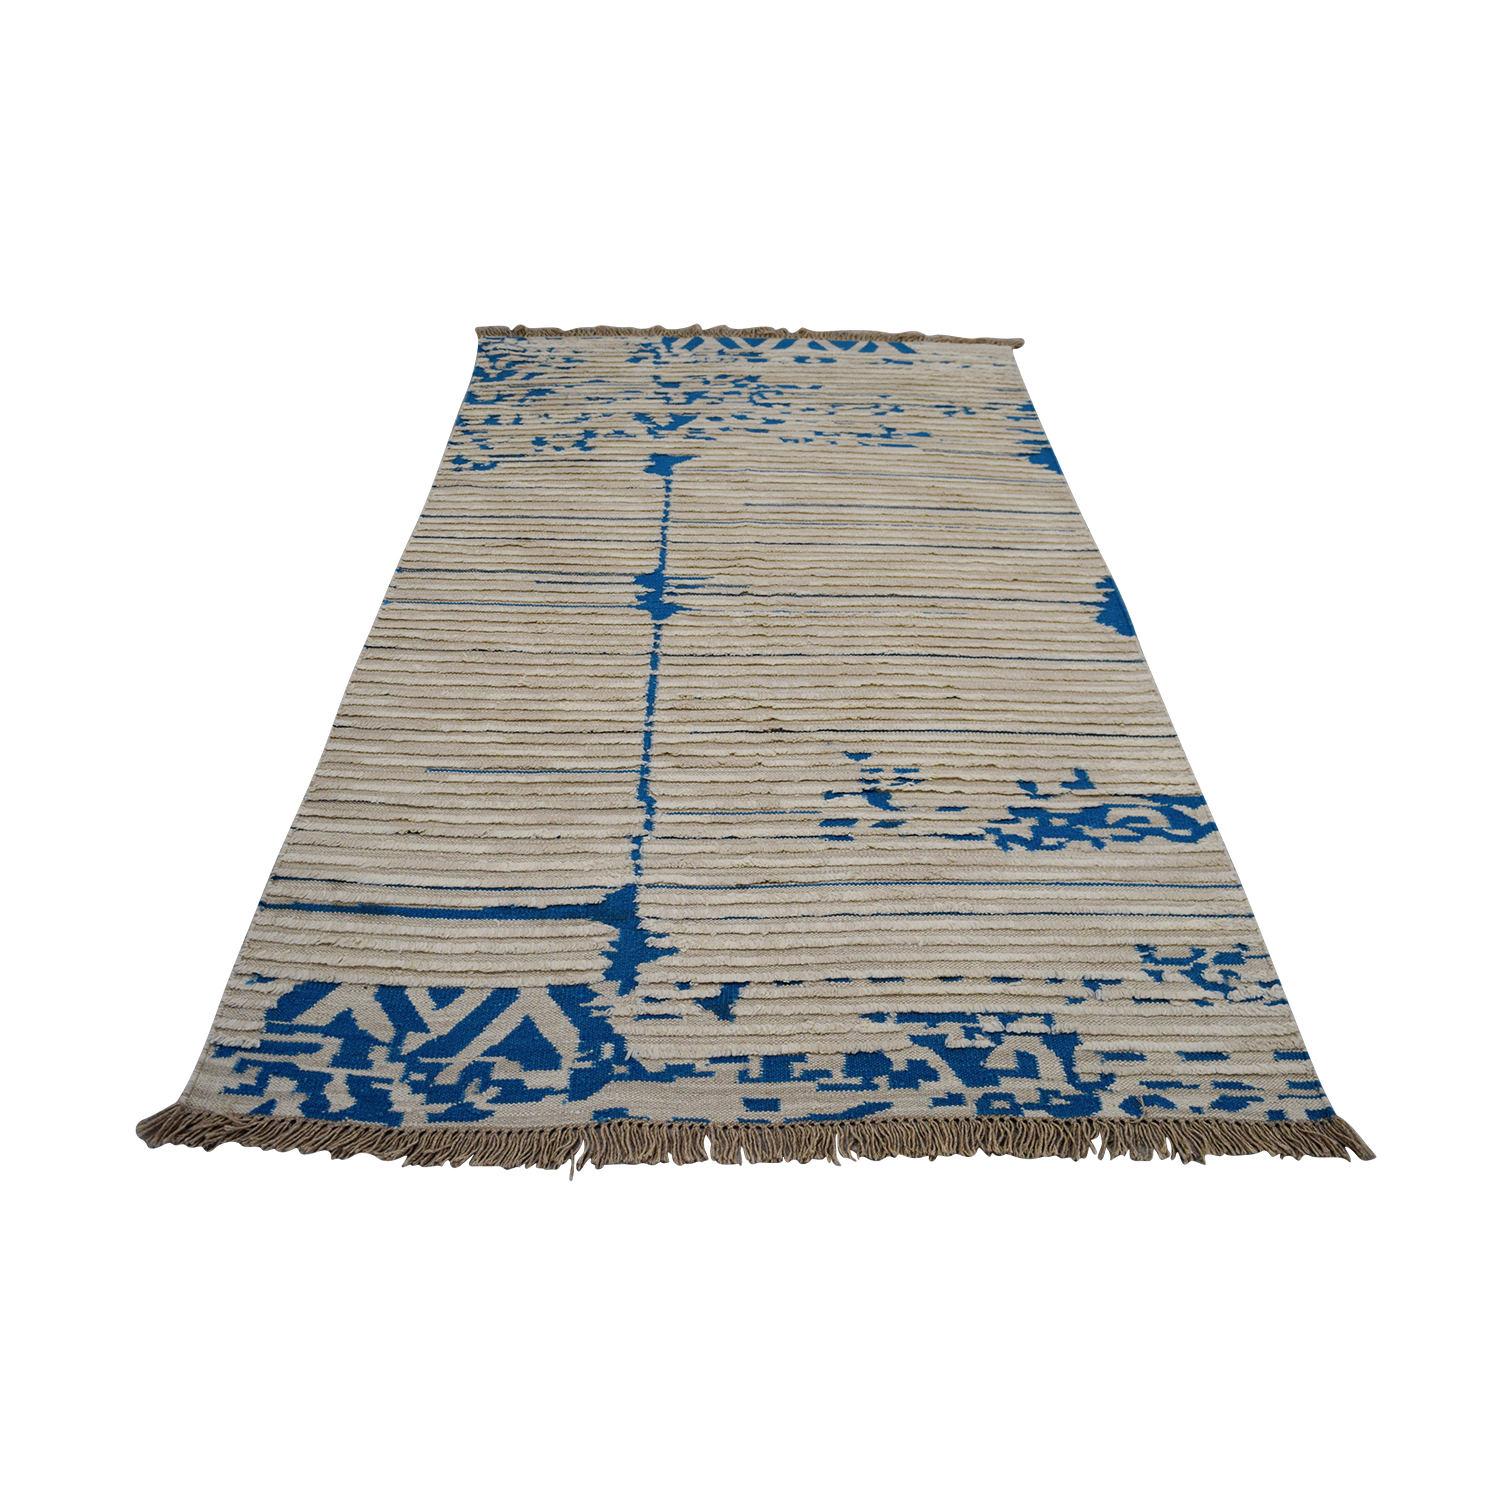 buy Obeetee Obeetee Blue and White Flat Weave online